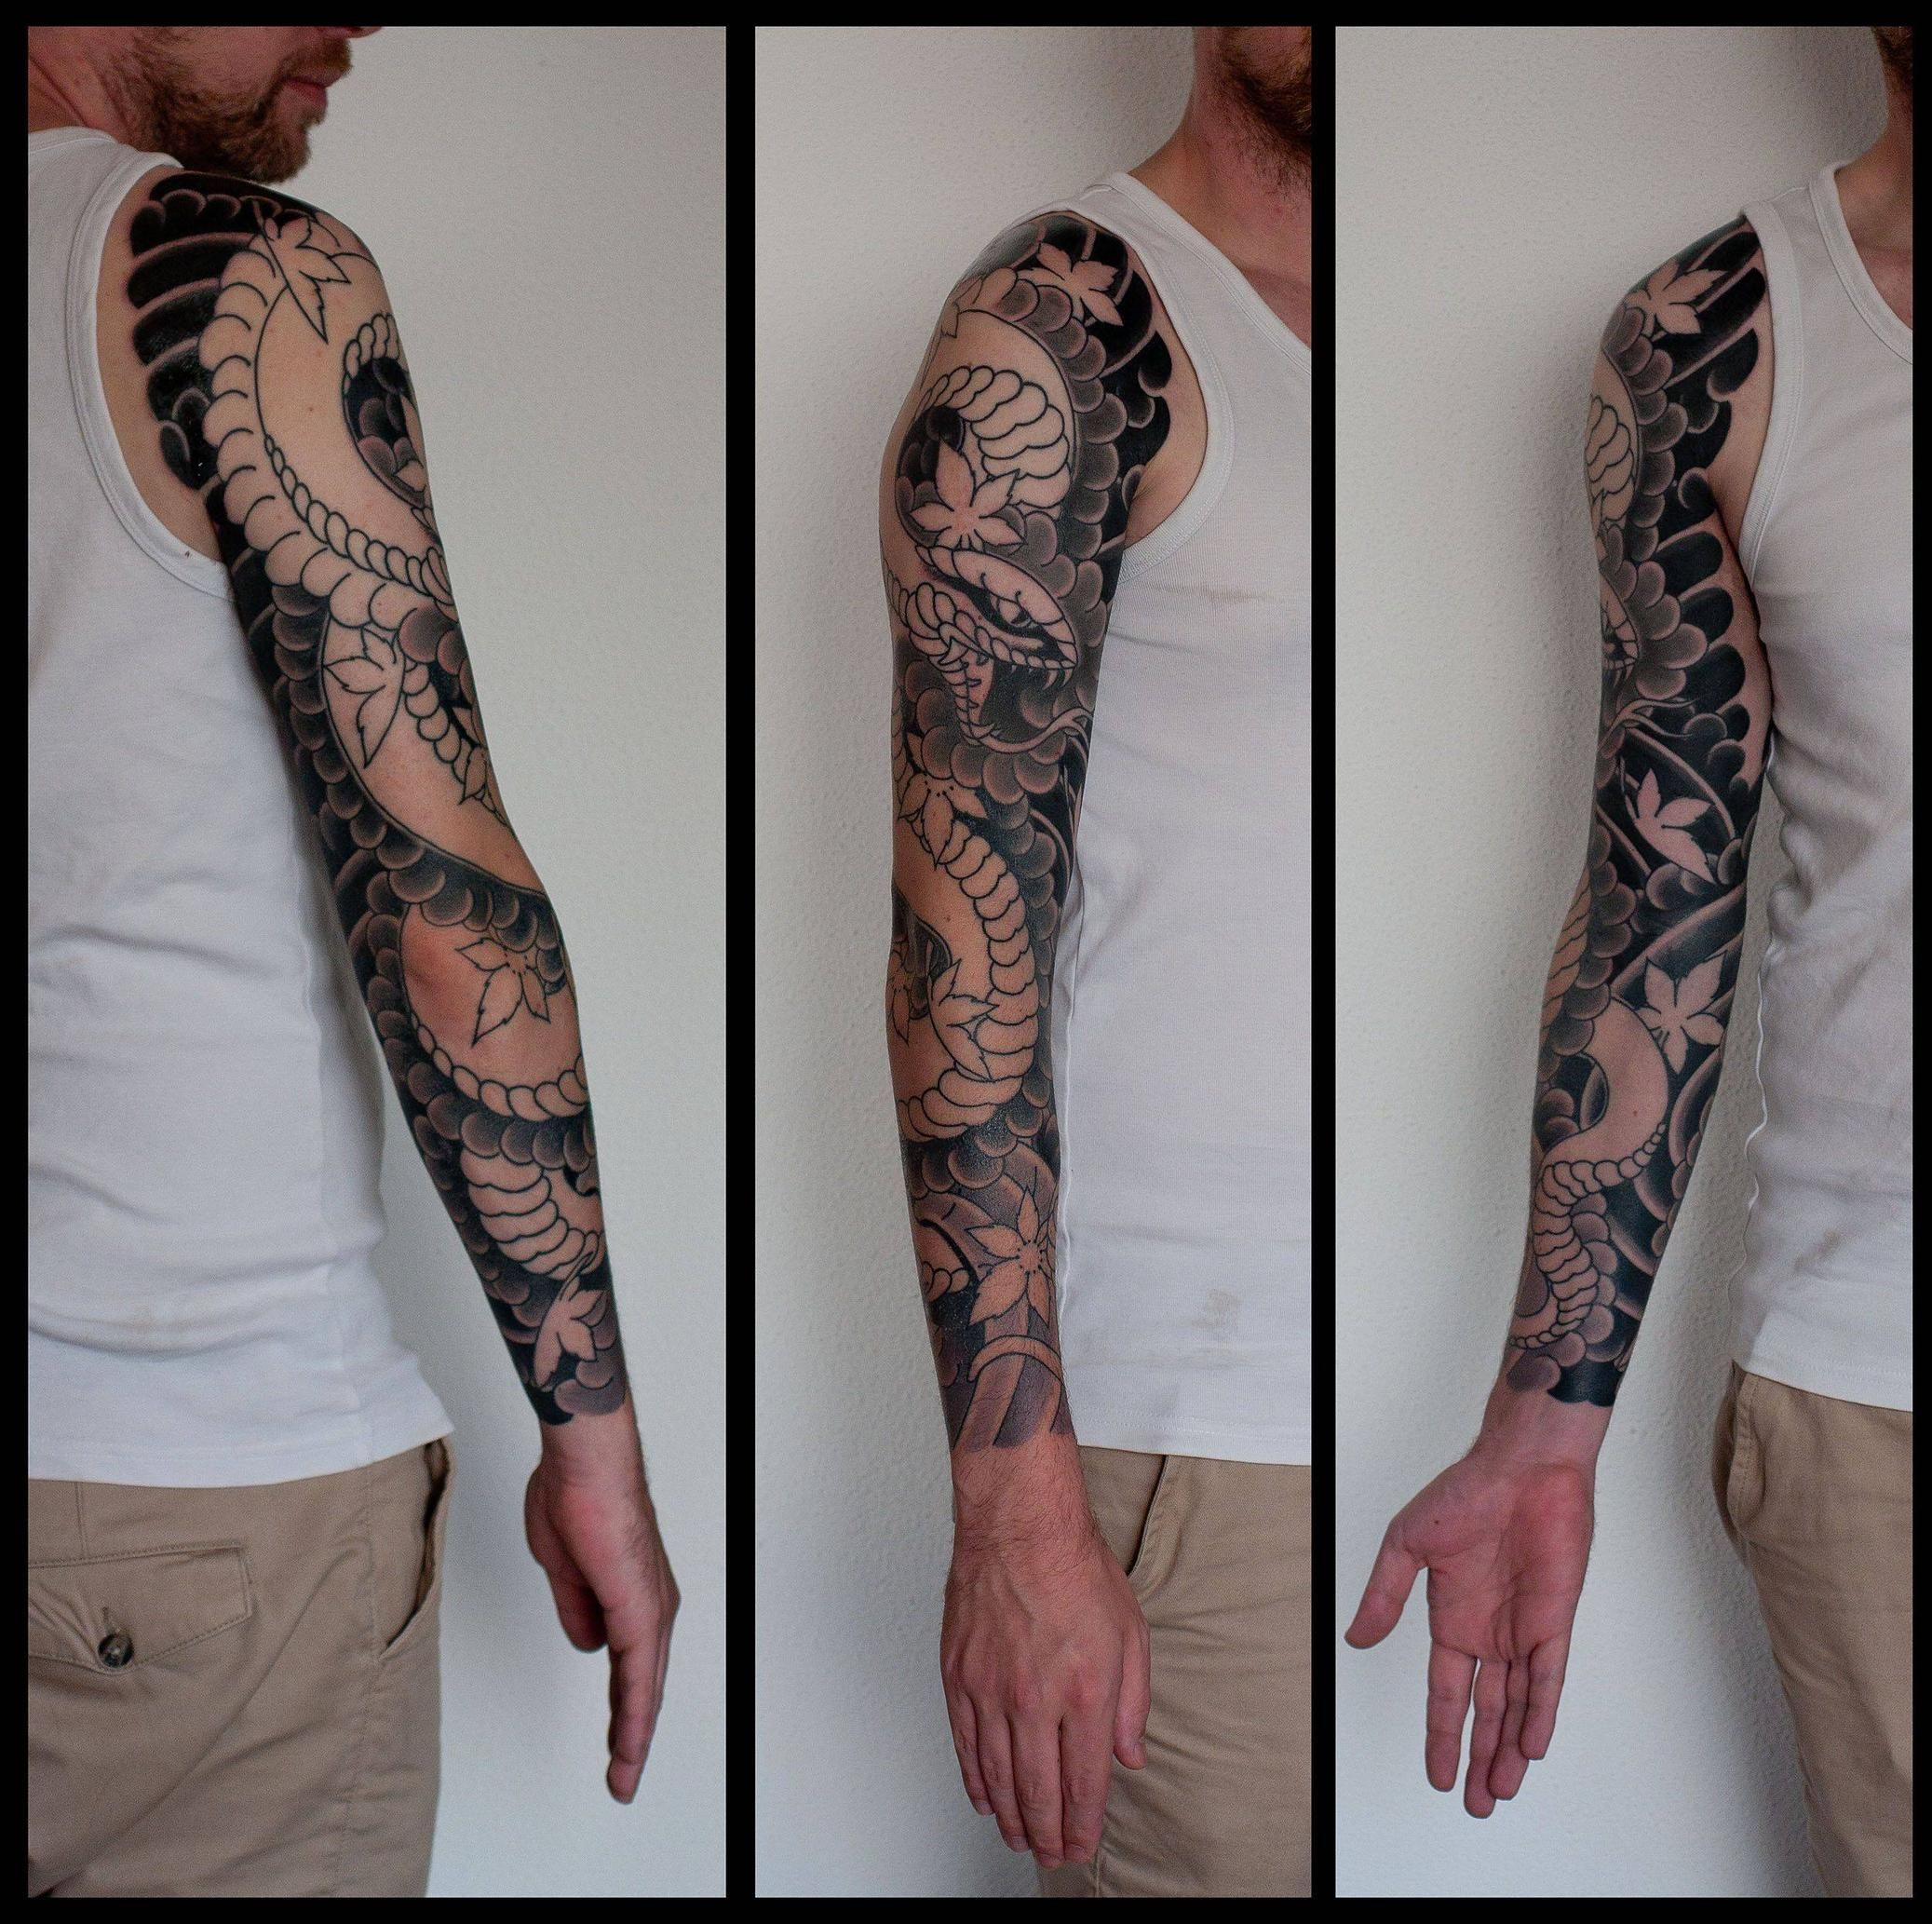 Wip snake sleeve by marco serio amsterdam tatting